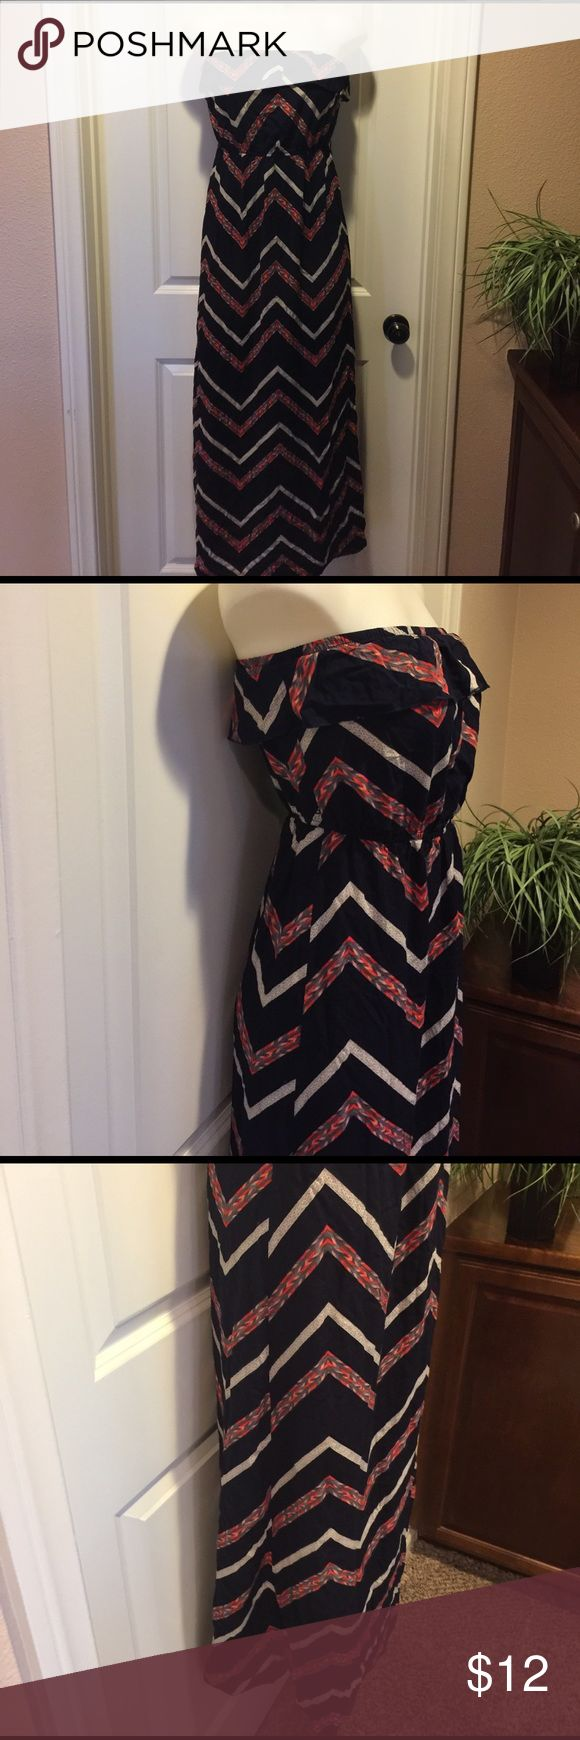 Cute Strapless Dress🌟 Cute Strapless dress in excellent condition, is elastic at waist, does not have belt, thanks for looking 😊 Dresses Strapless